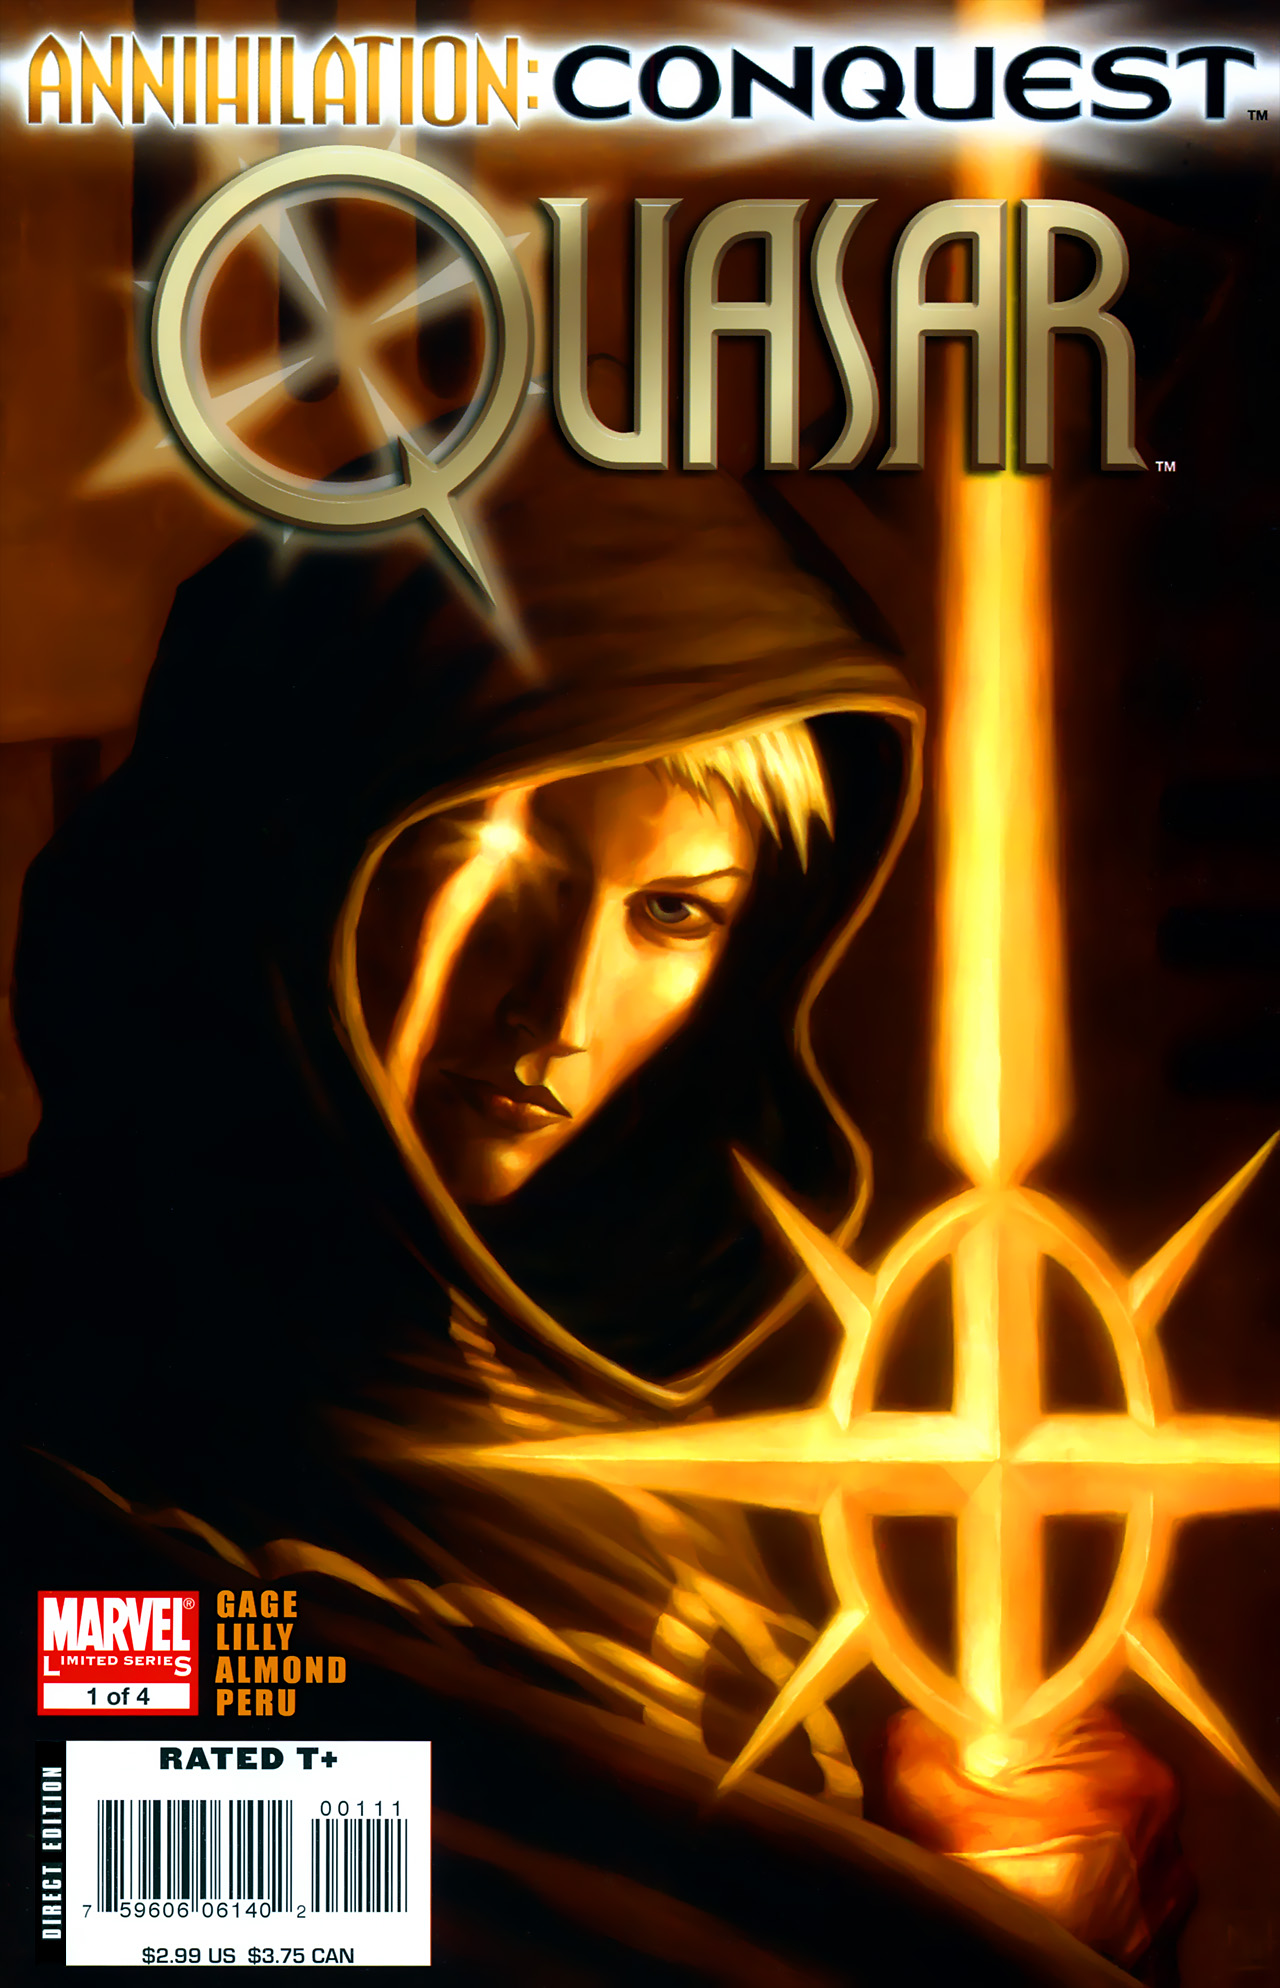 Annihilation: Conquest - Quasar #1-4 - 2007